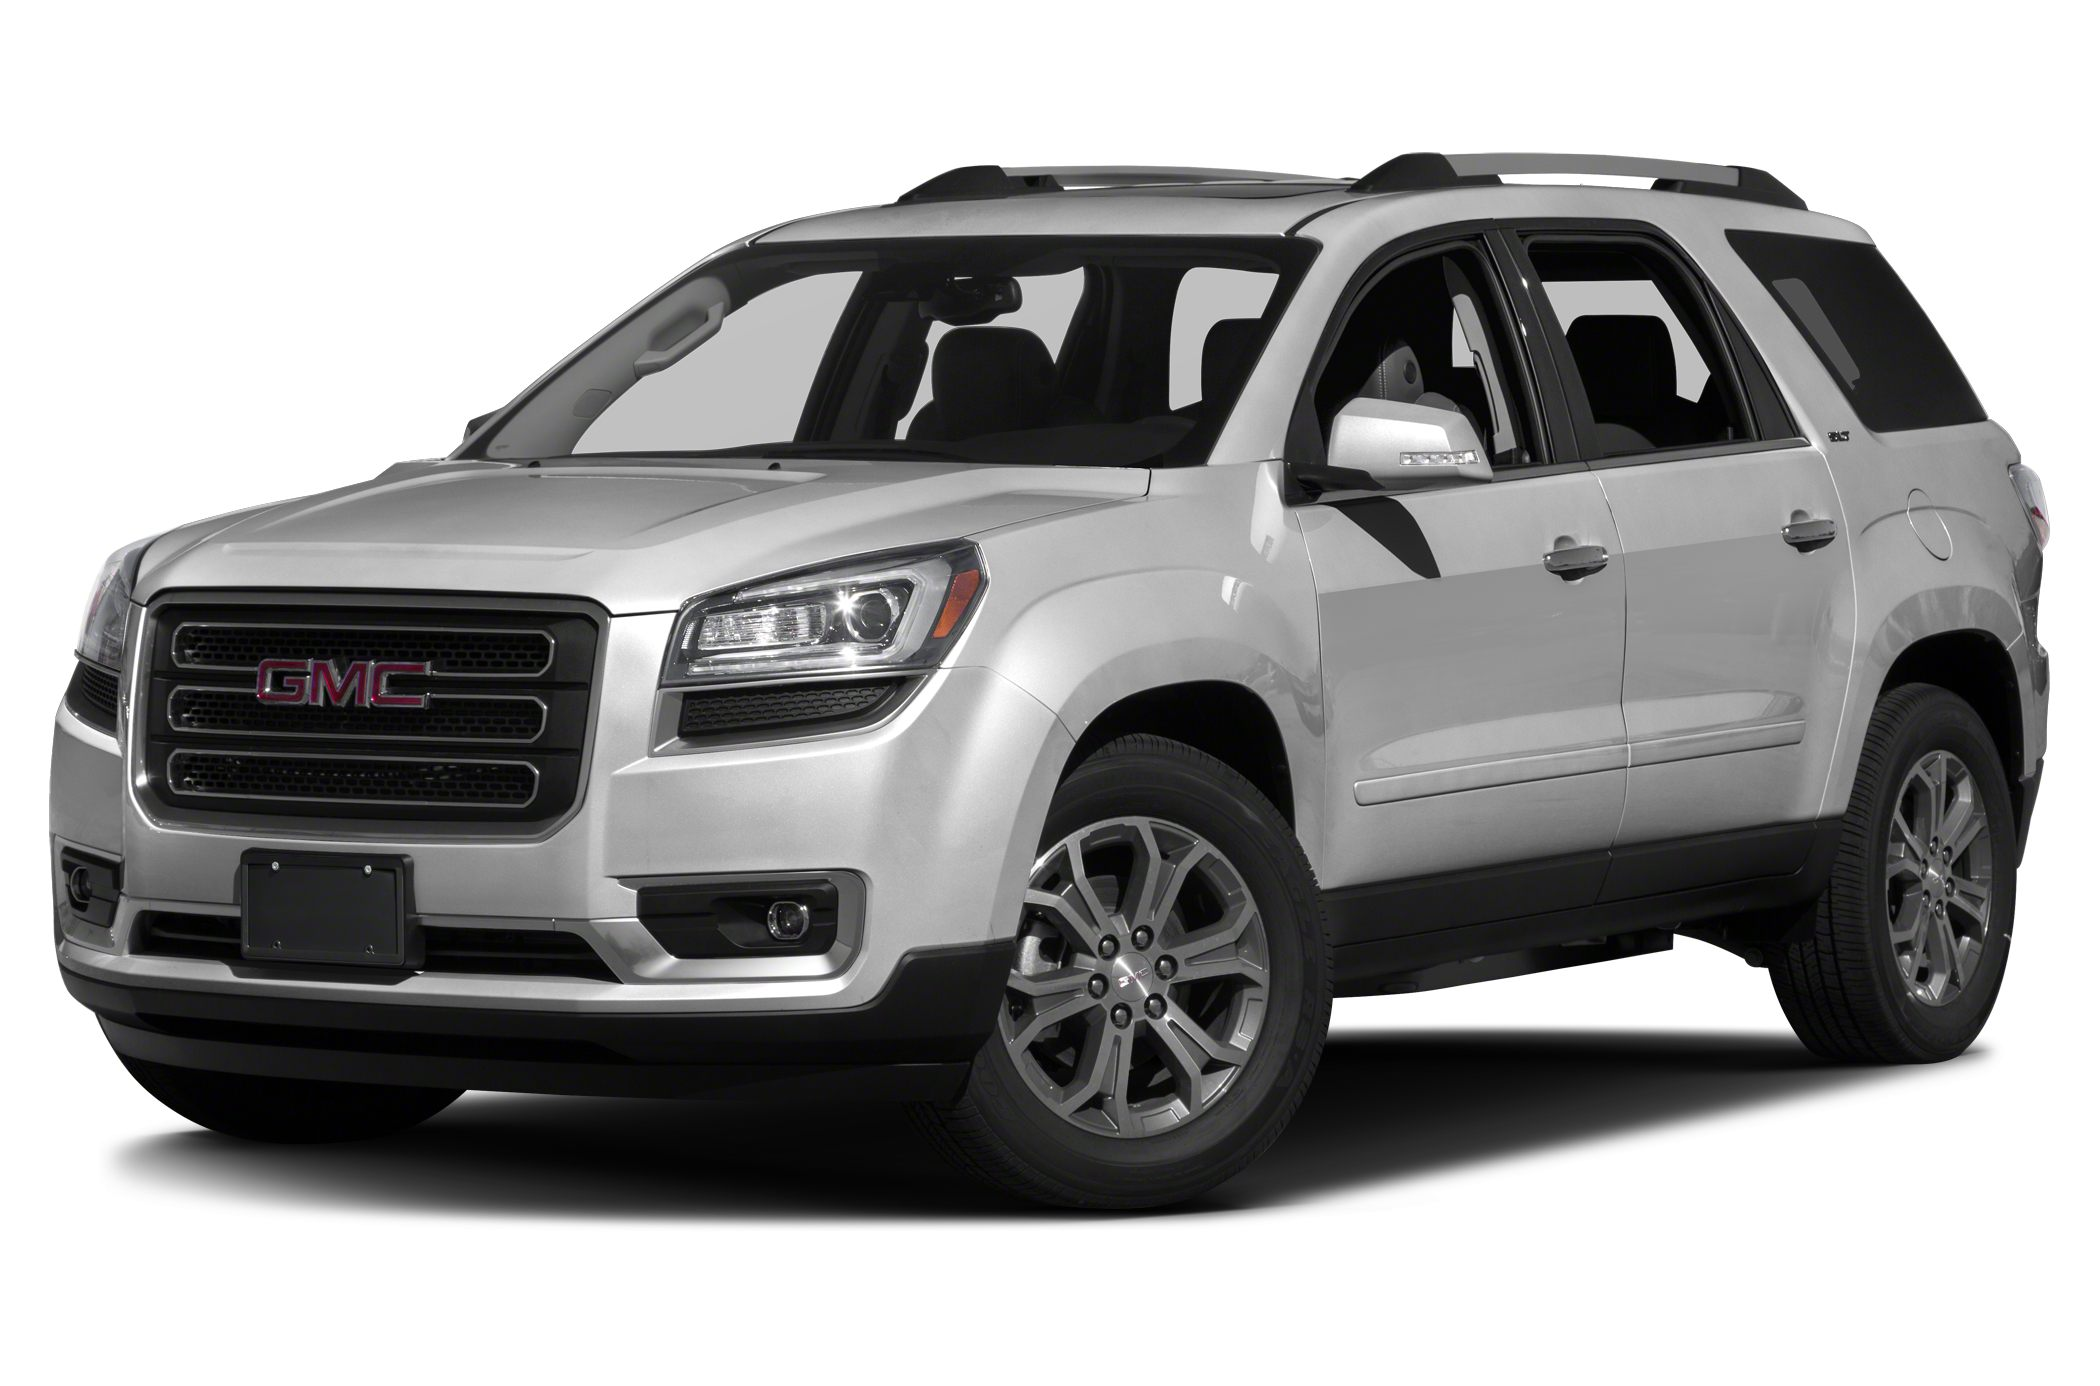 2017 Gmc Acadia Limited Limited All Wheel Drive Pricing And Options